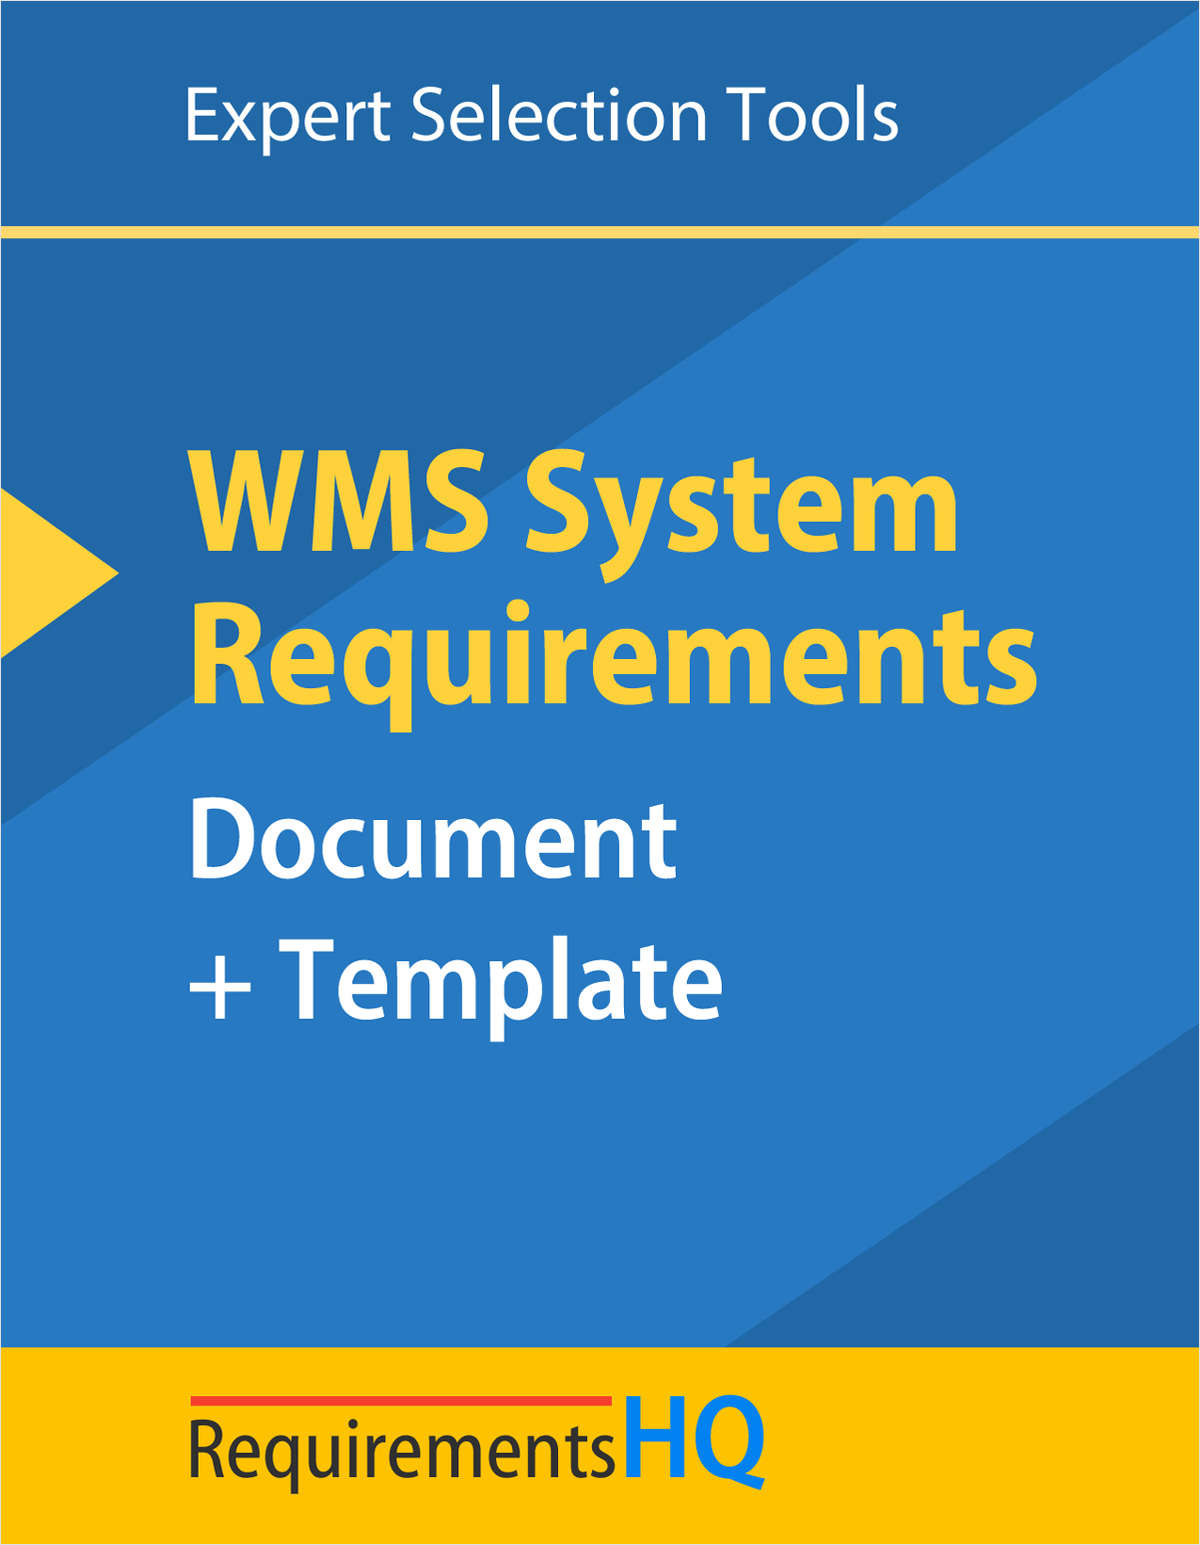 Warehouse Management System Requirements Document & Template